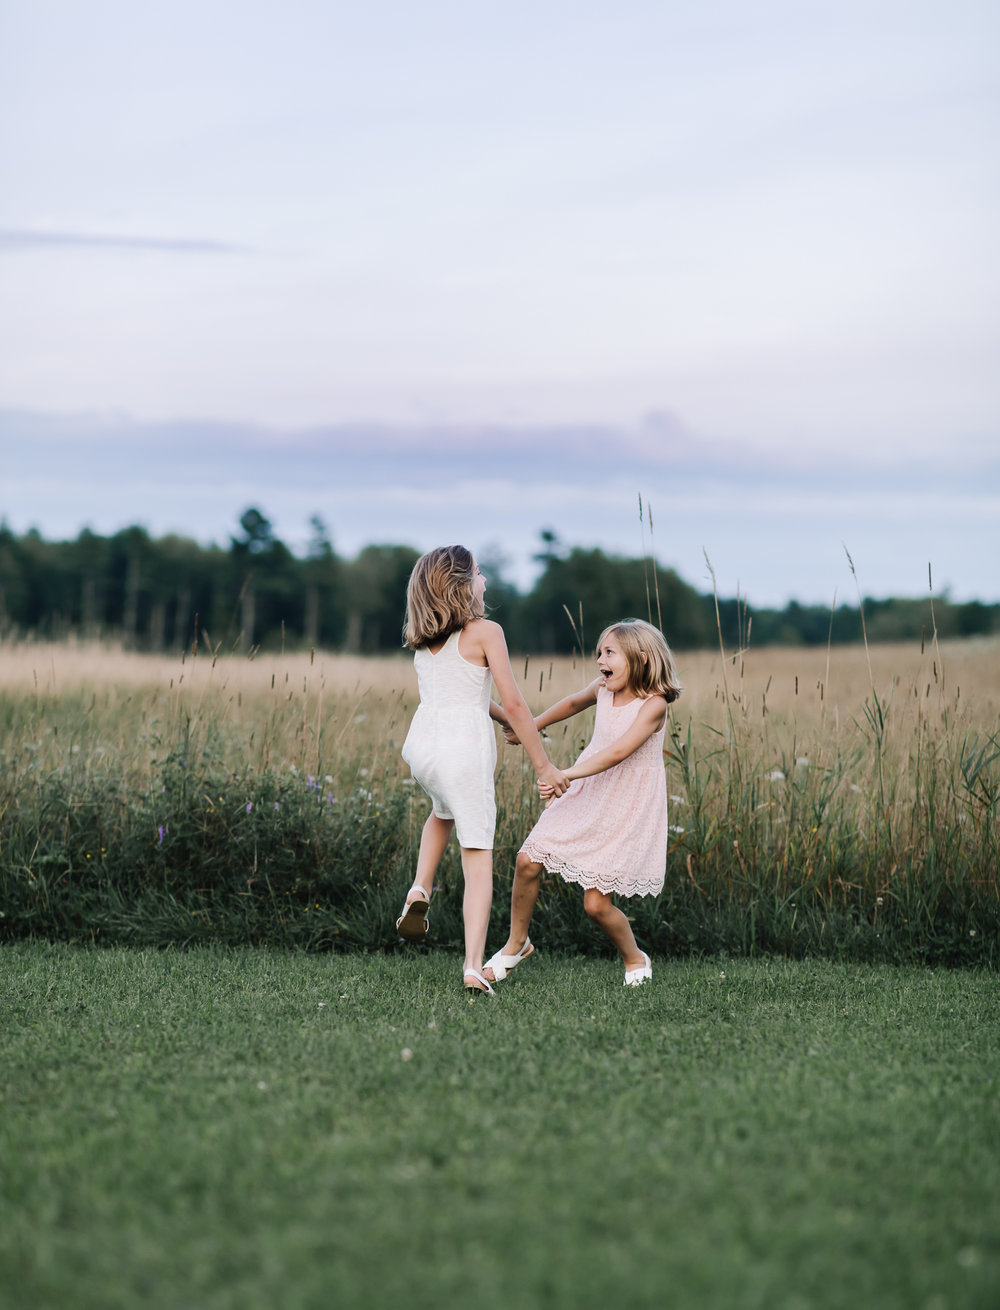 maine-sisters-childhood-kids-natural-candid-photography.jpg